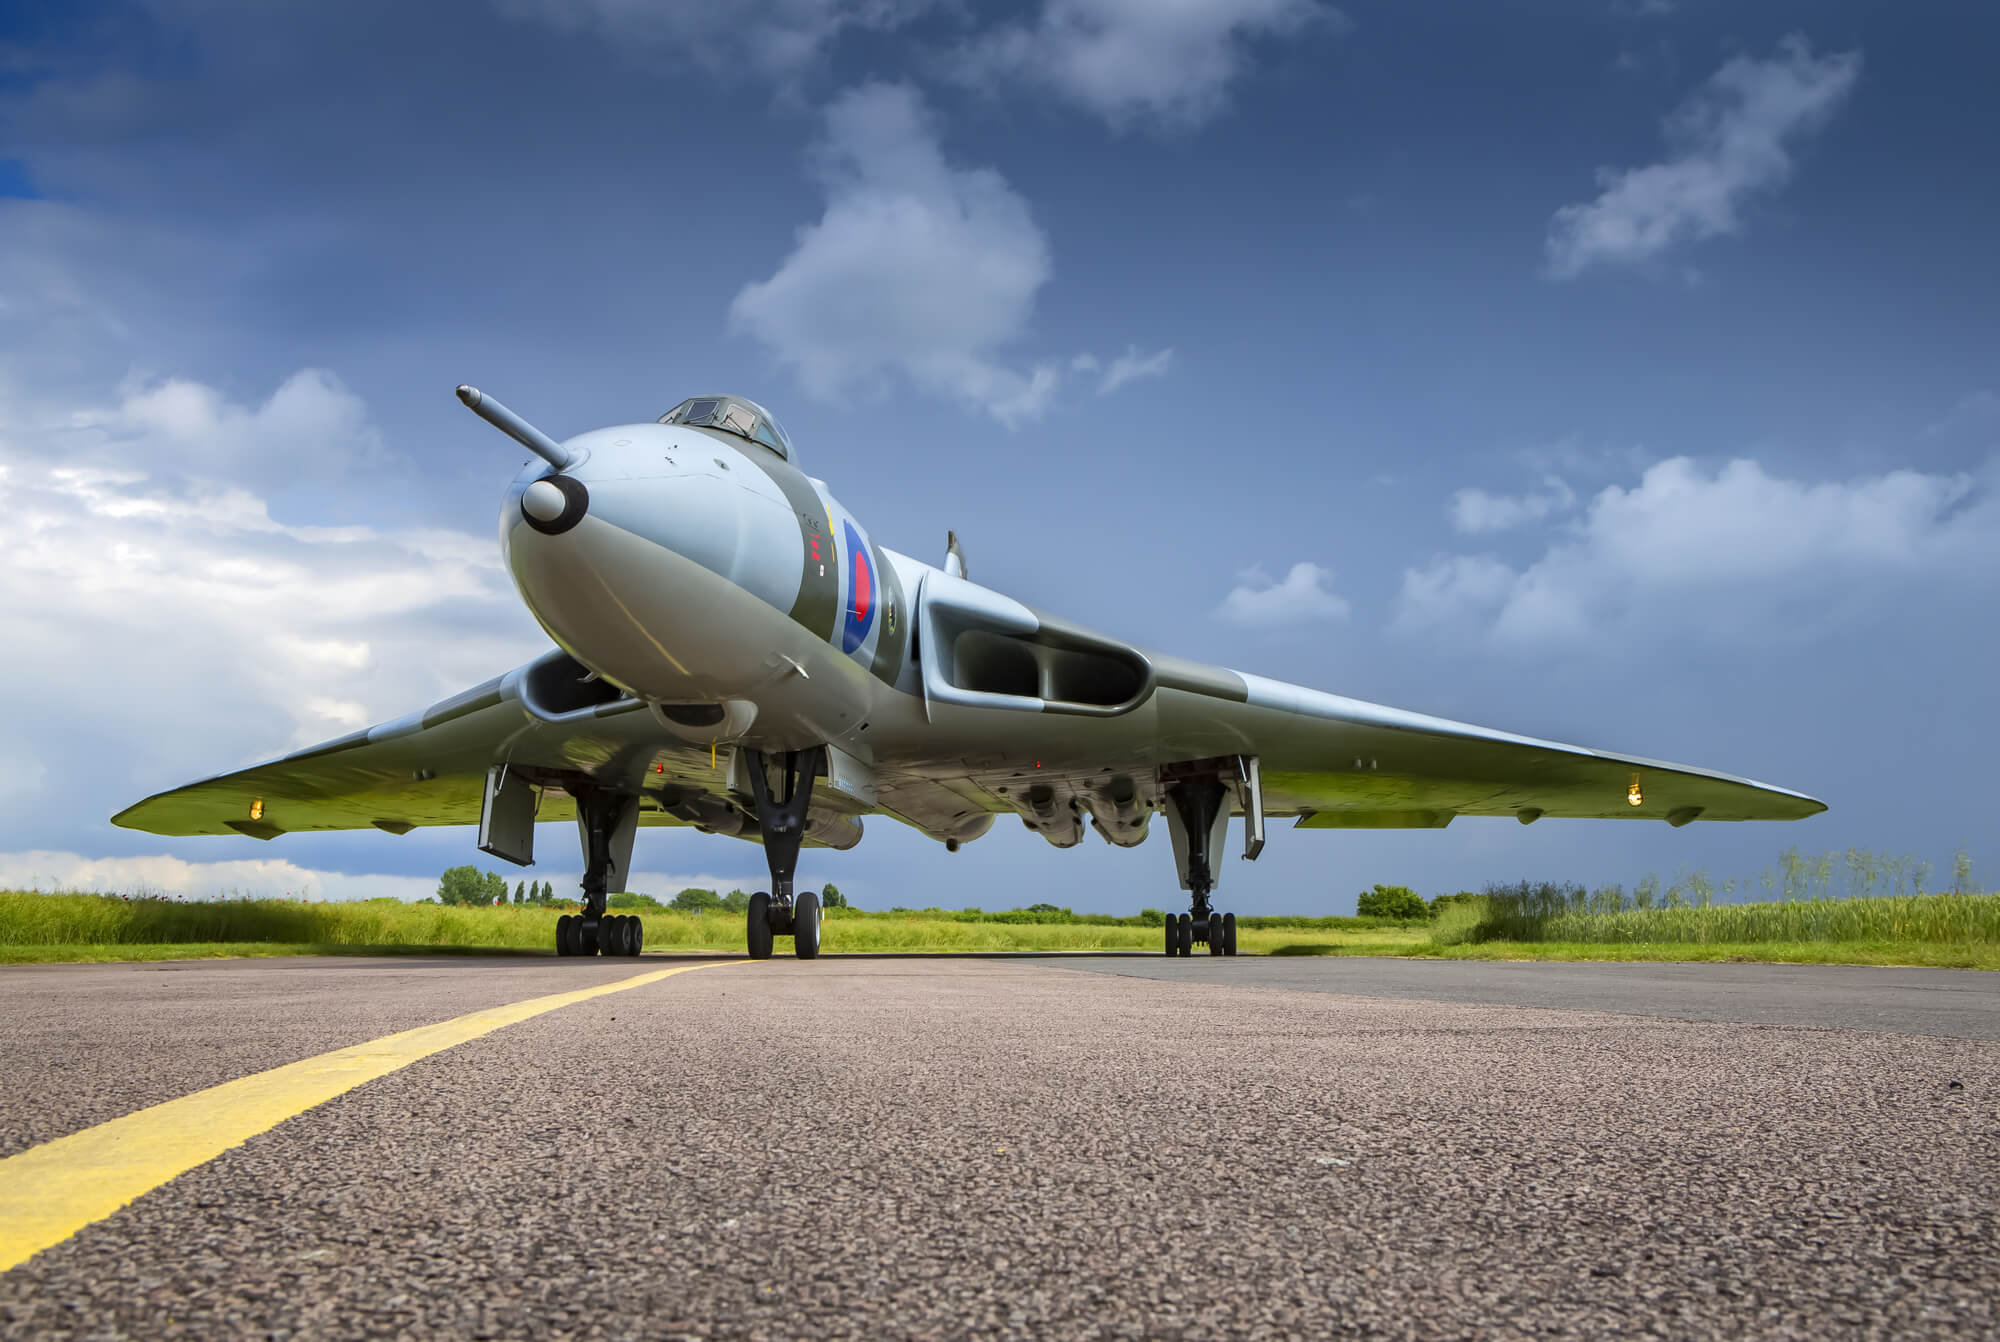 avro vulcan bomber on taxiway wall mural